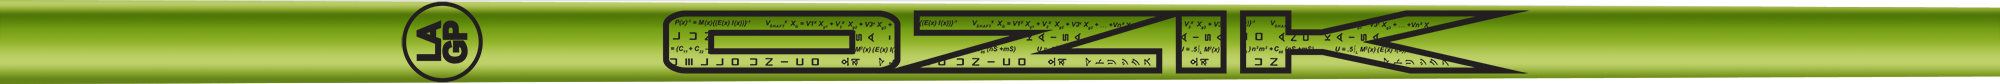 Ozik Red Tie: Lime Green Black Gloss - Wood 60 R